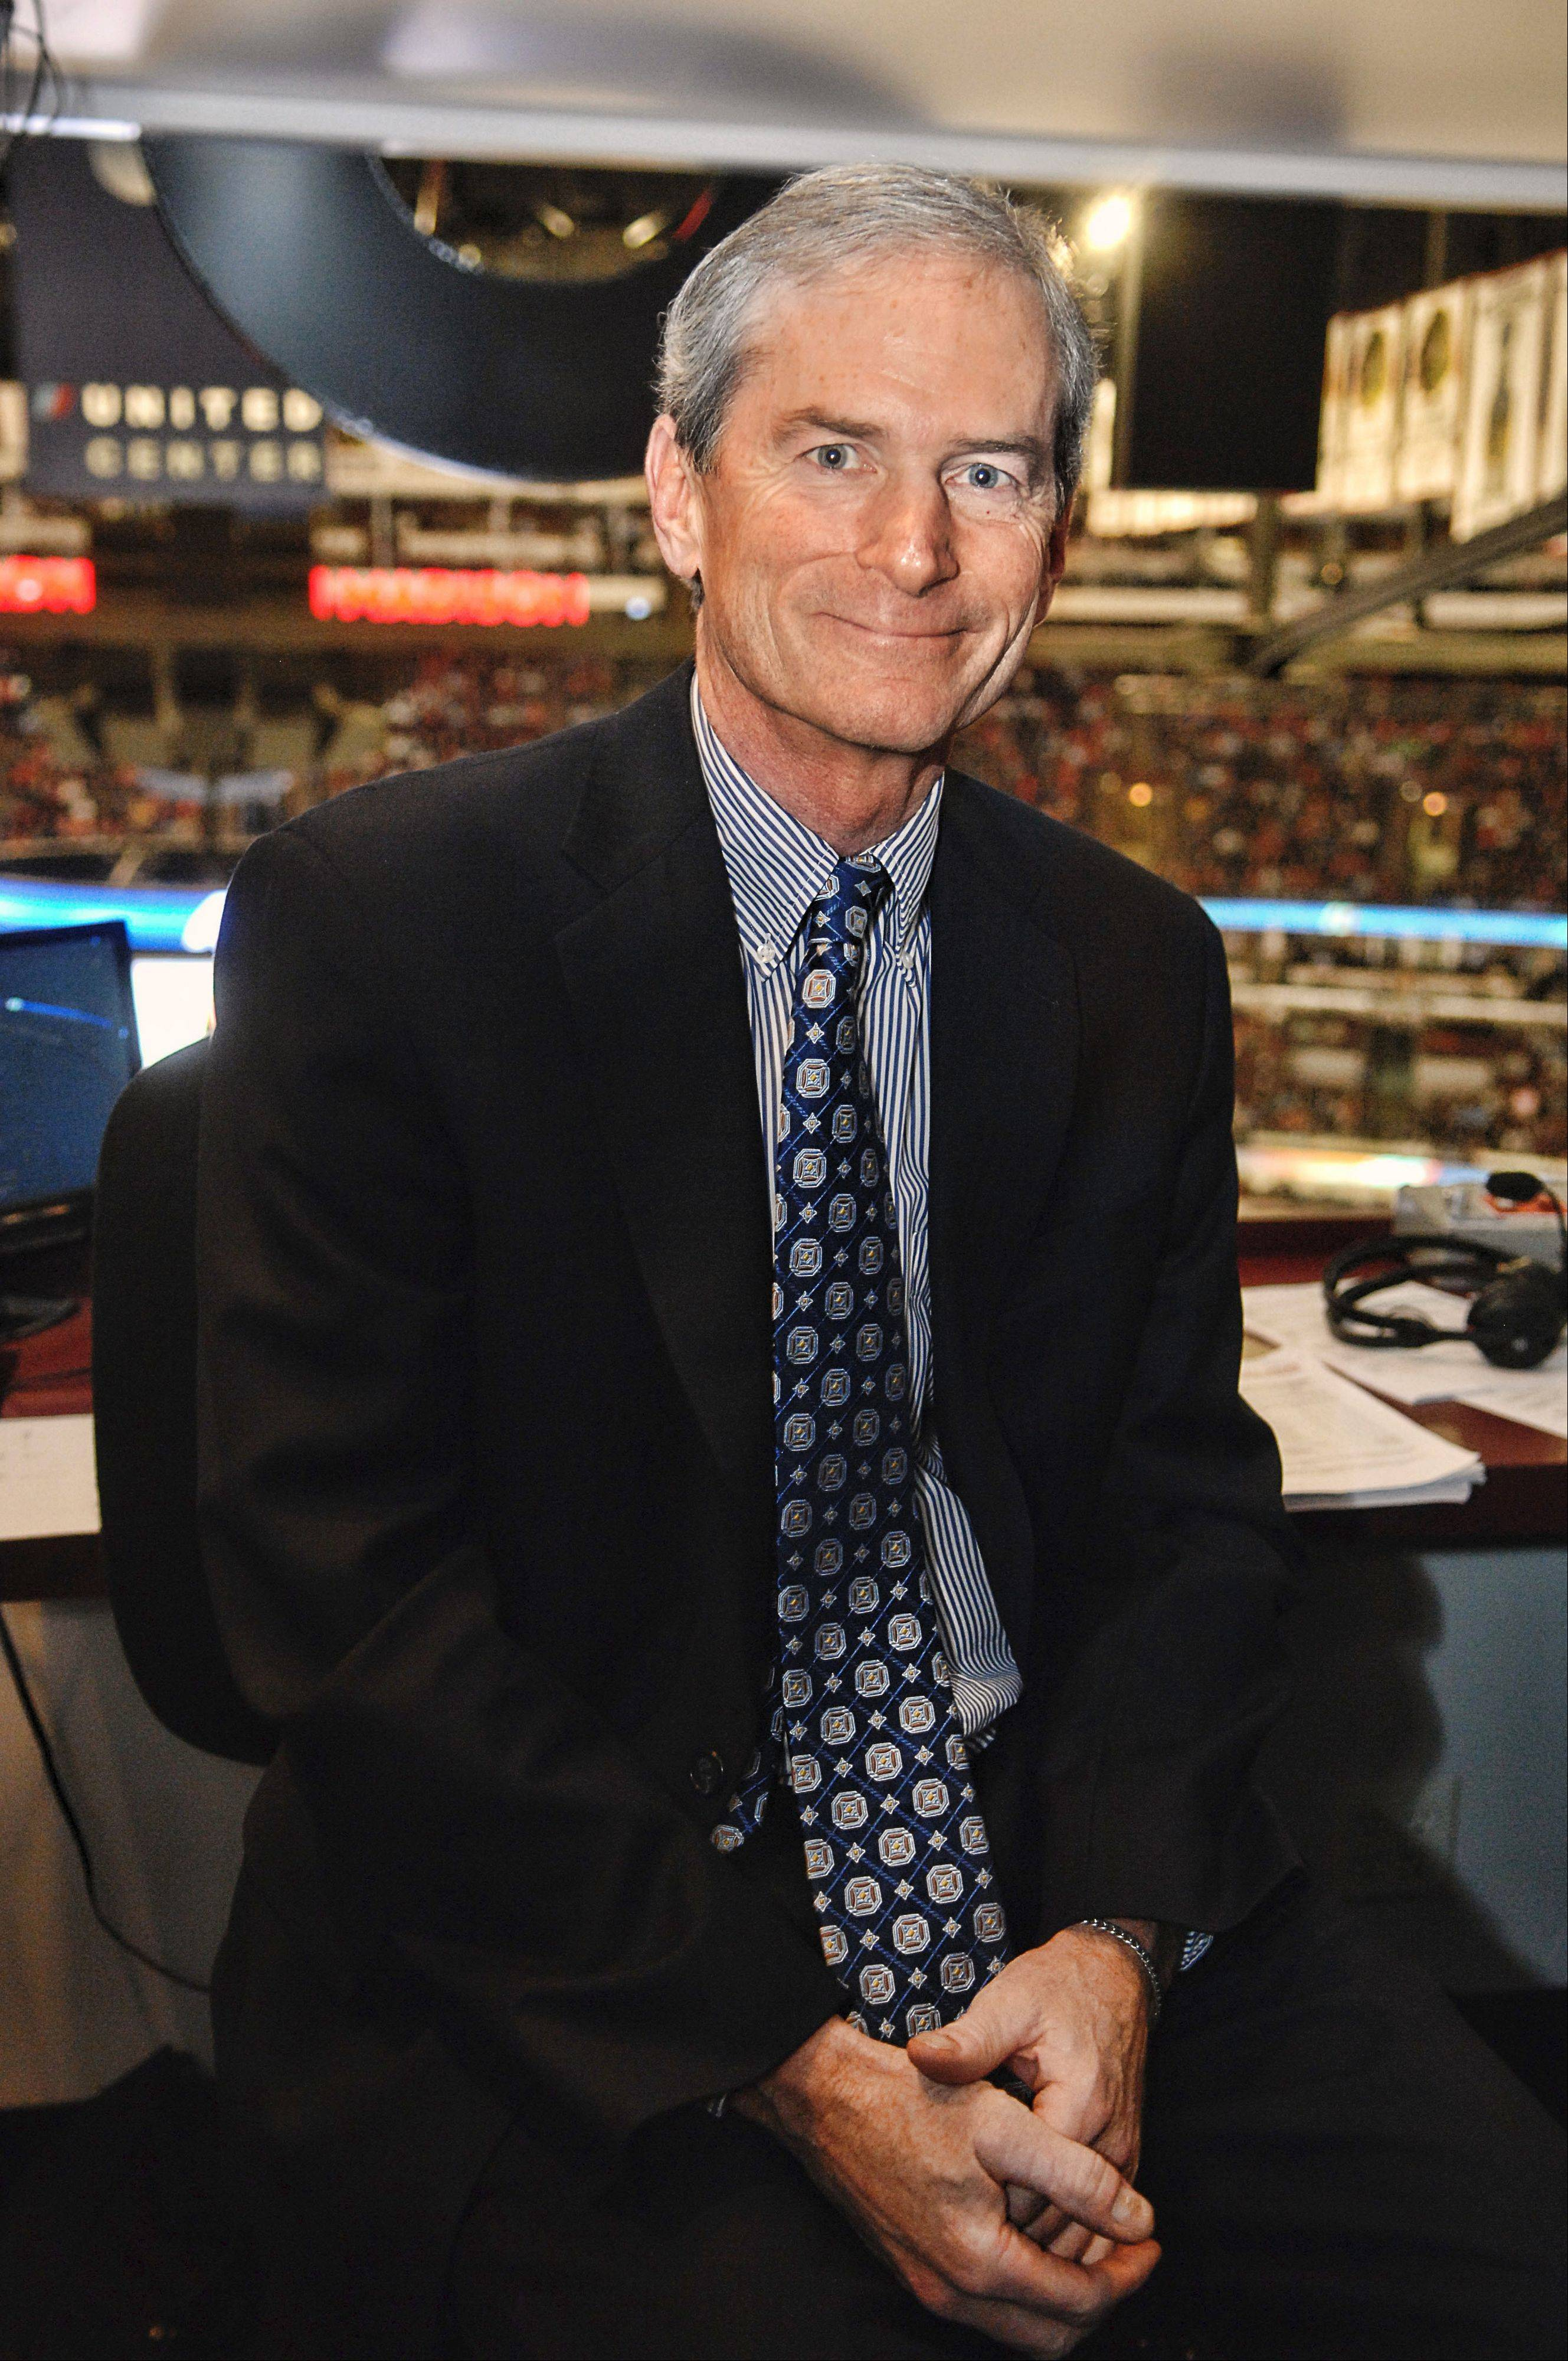 Longtime broadcaster Pat Foley insists he�s the luckiest man in Chicago to be working in his hometown with his favorite sport and the best team in the NHL. On Friday, the Hawks will honor Foley for his 30 years with the team.